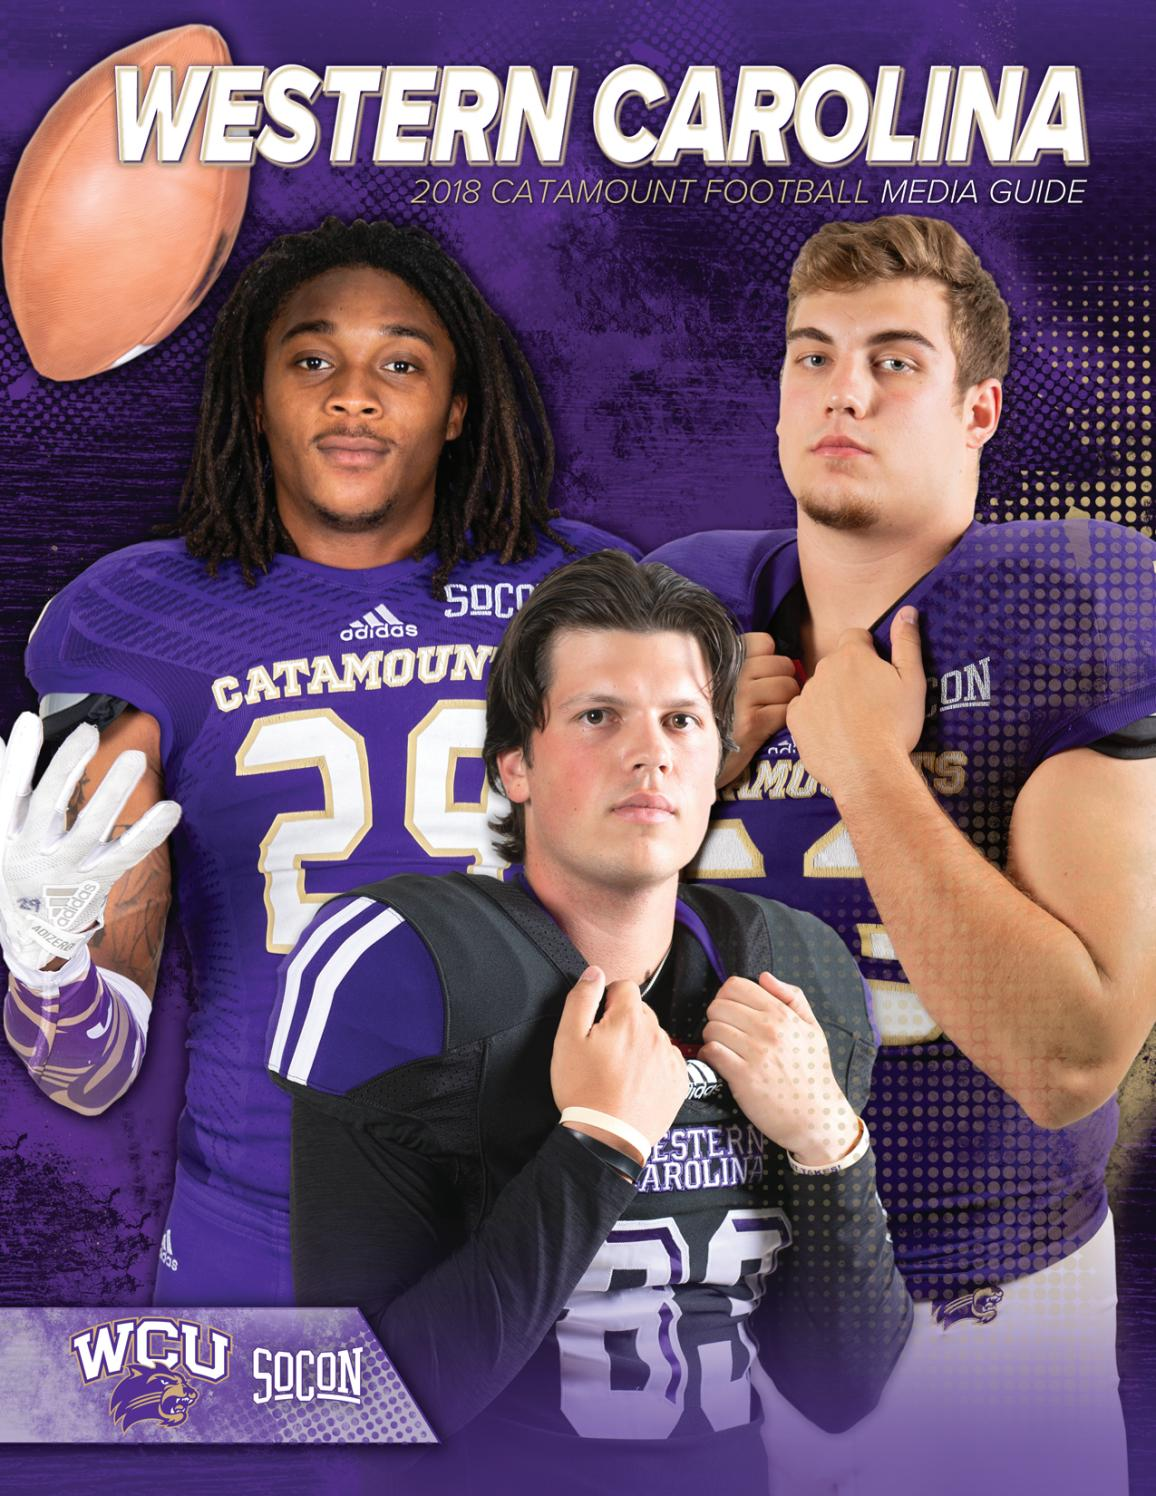 fbc2f02d2 Western Carolina 2018 Football Media Guide by Western Carolina University  Athletics - issuu